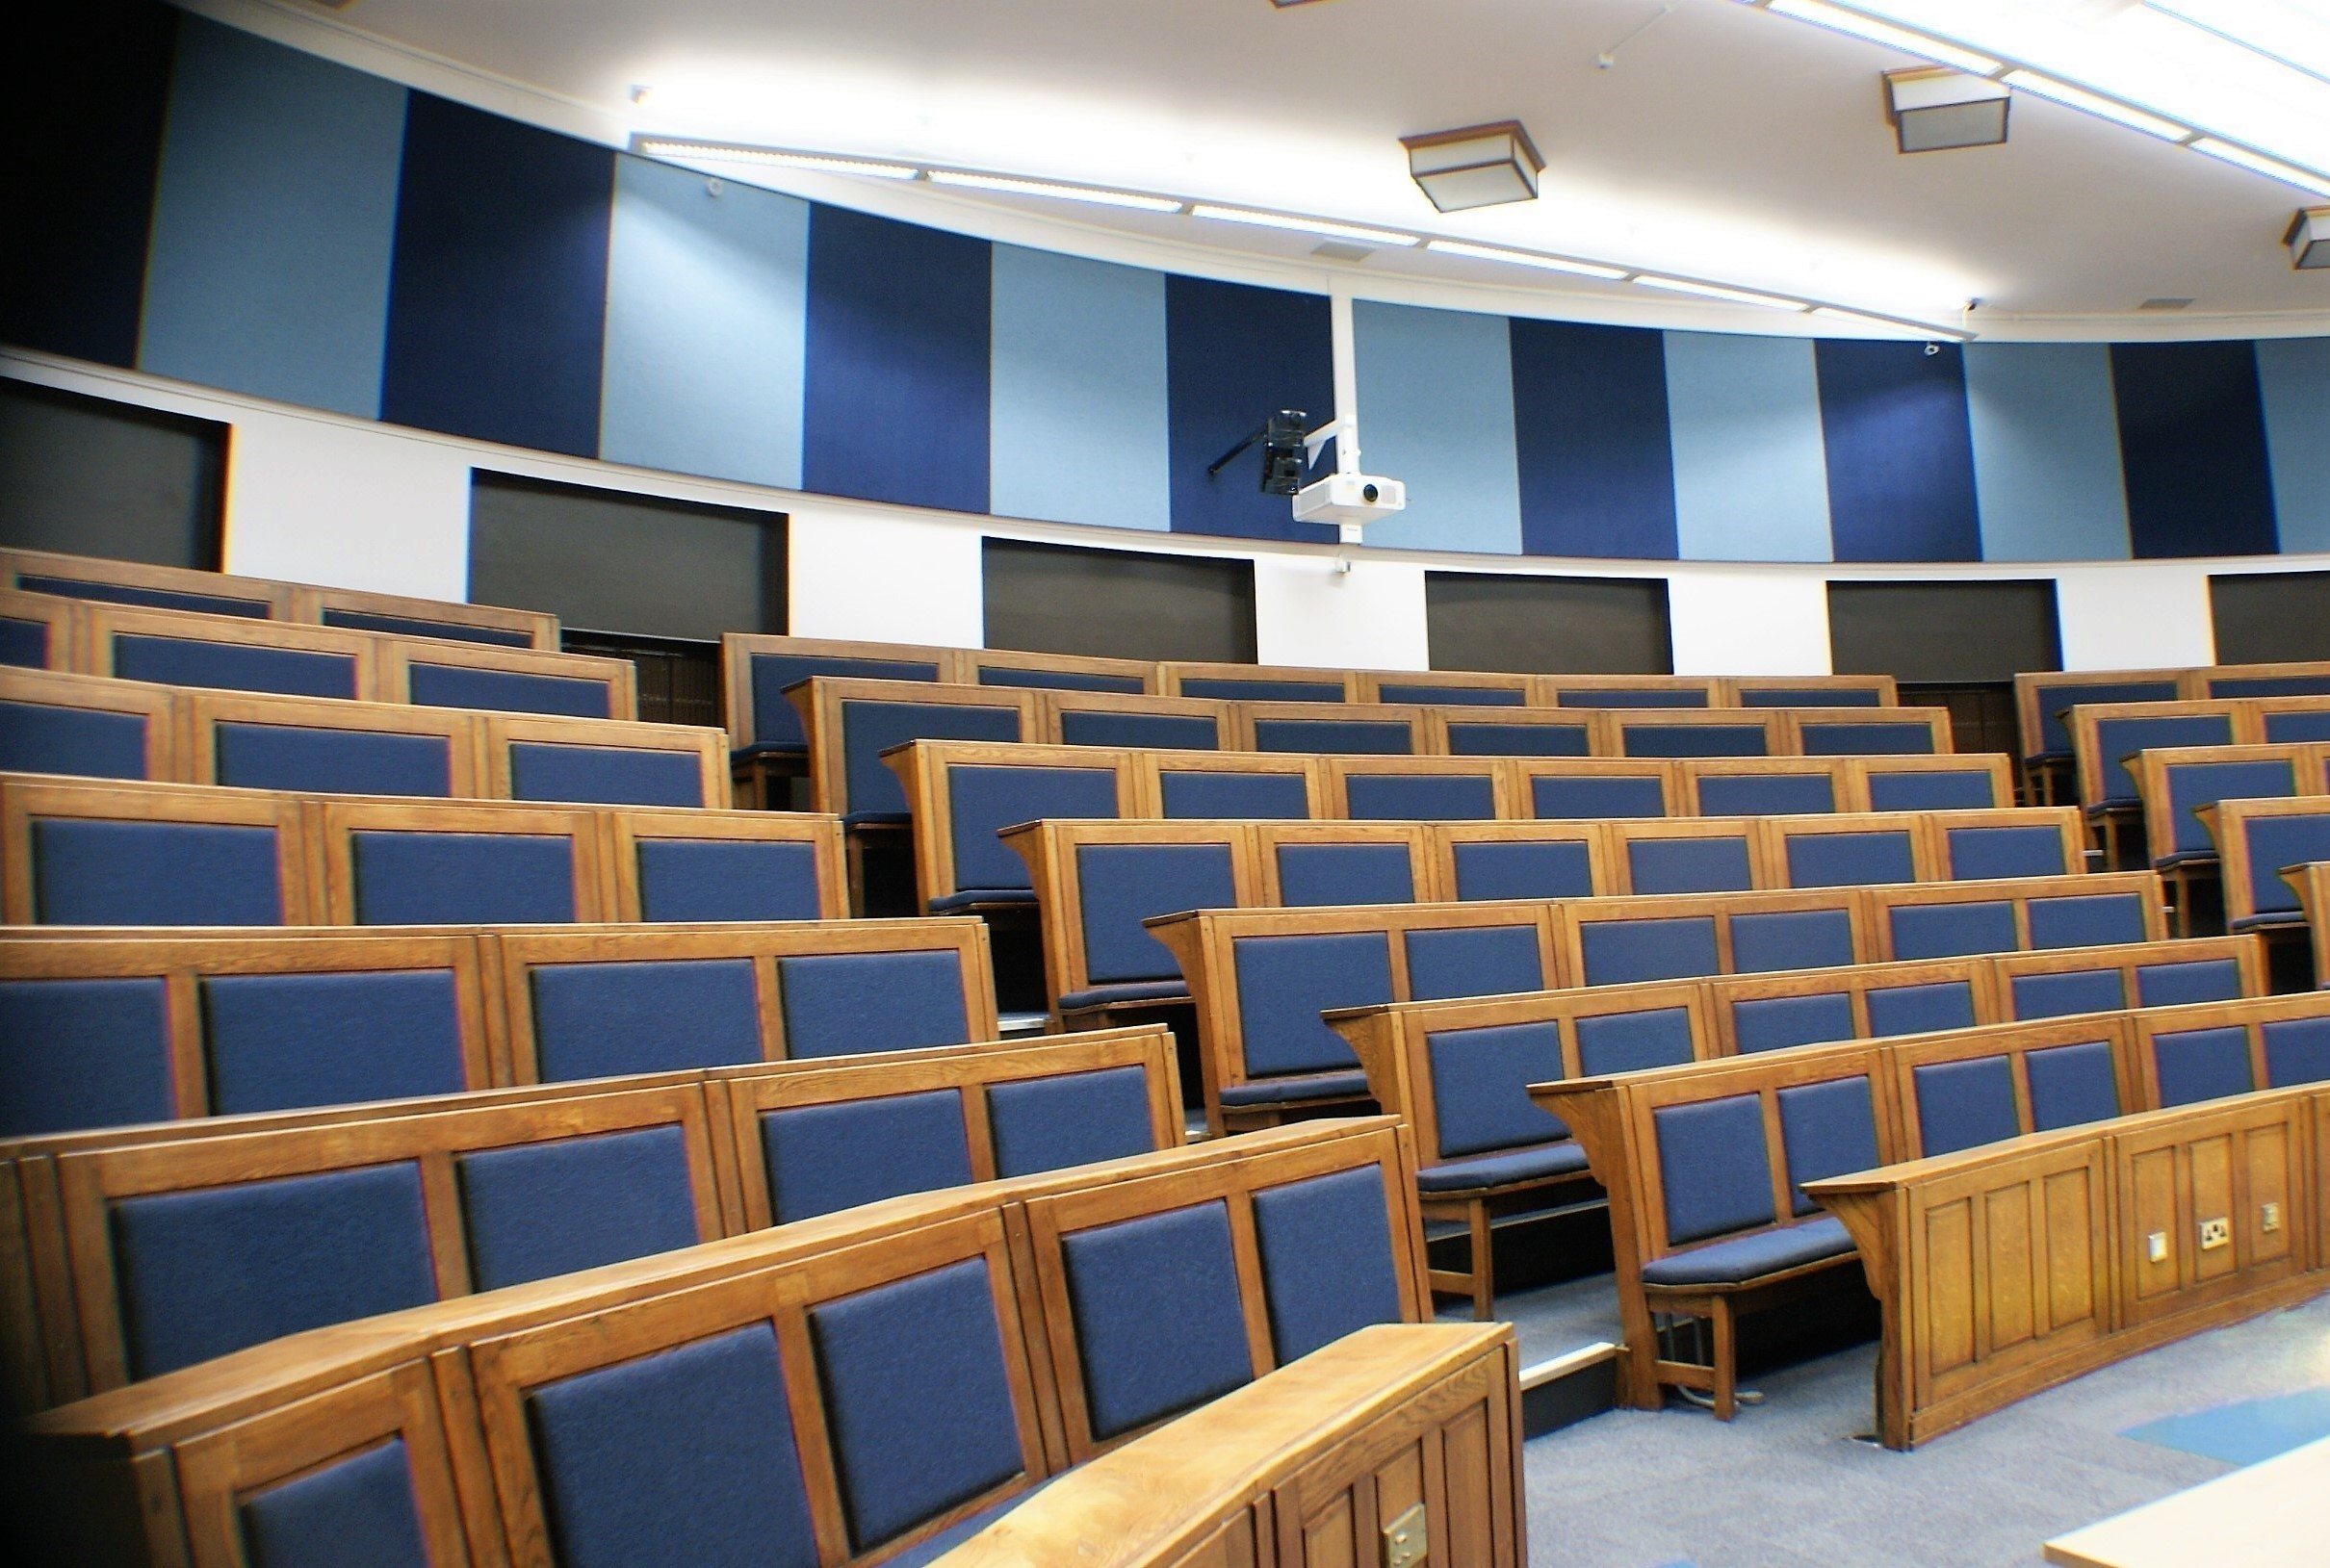 Lecture Theatre A, Chemistry Building - CTS 2017